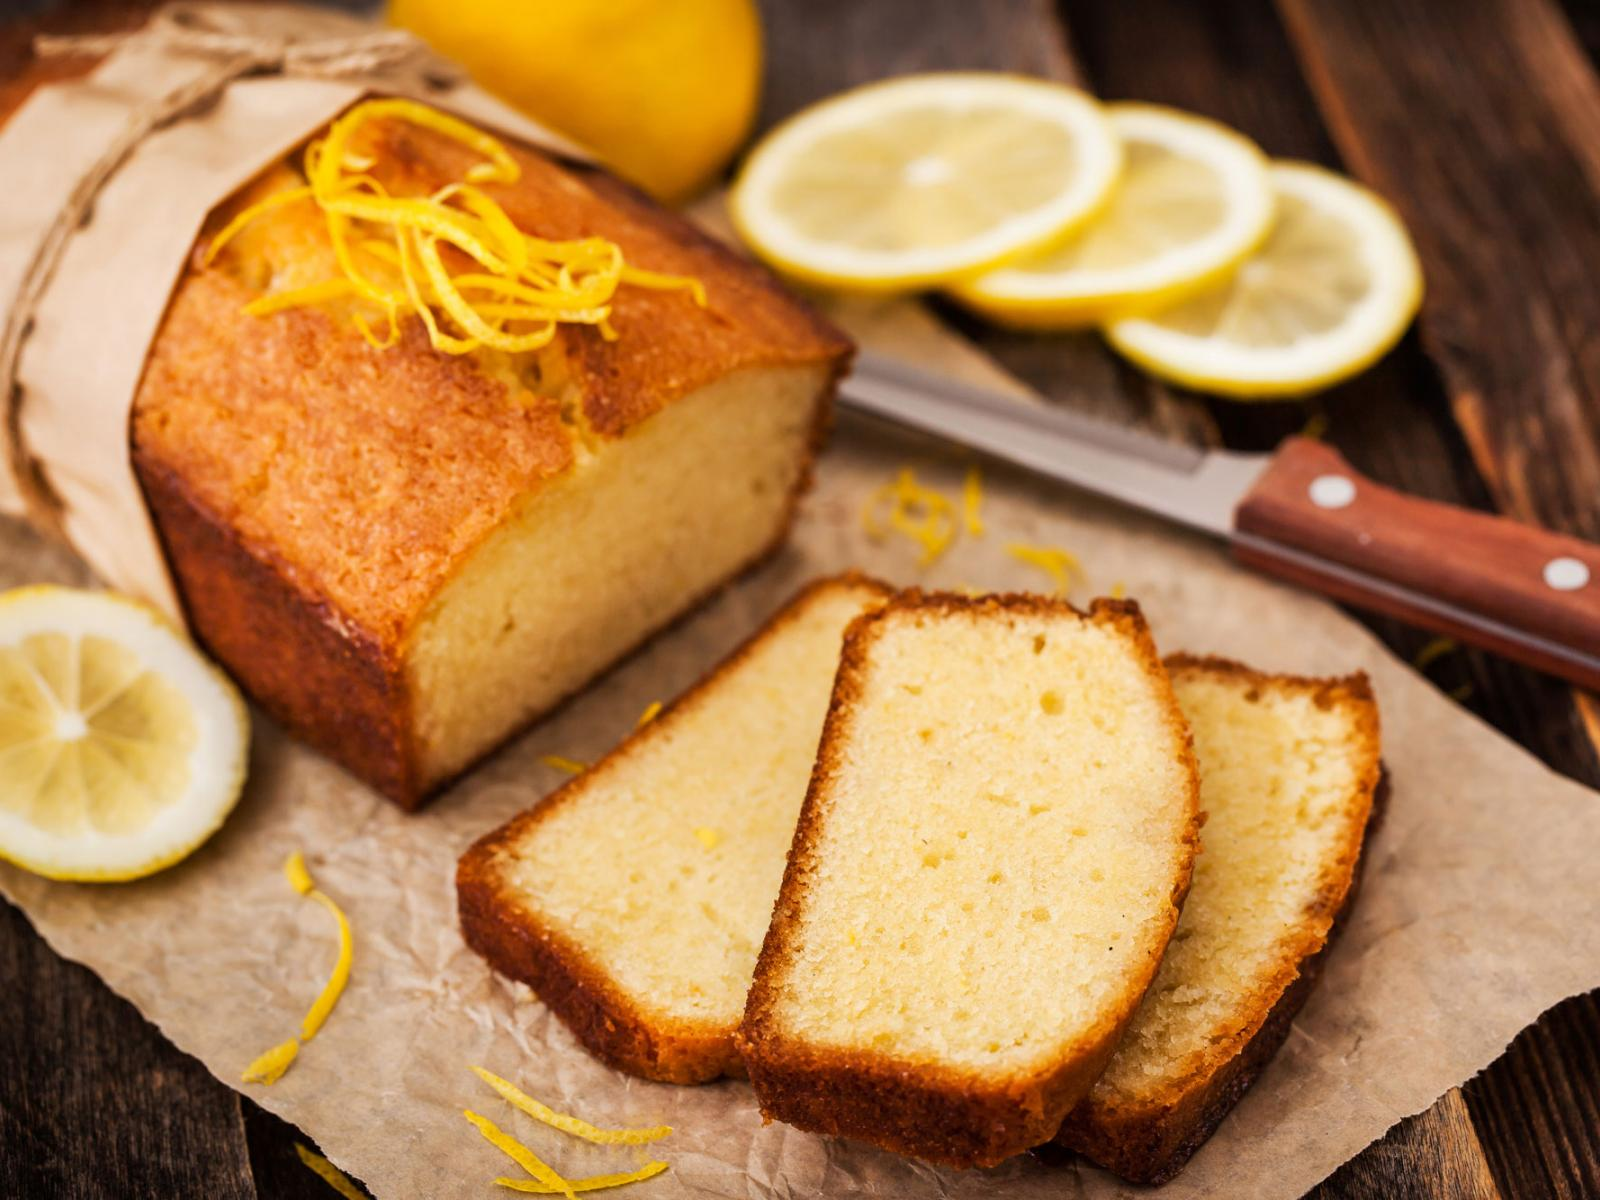 Jacqueline's Lemon Loaf Recipe